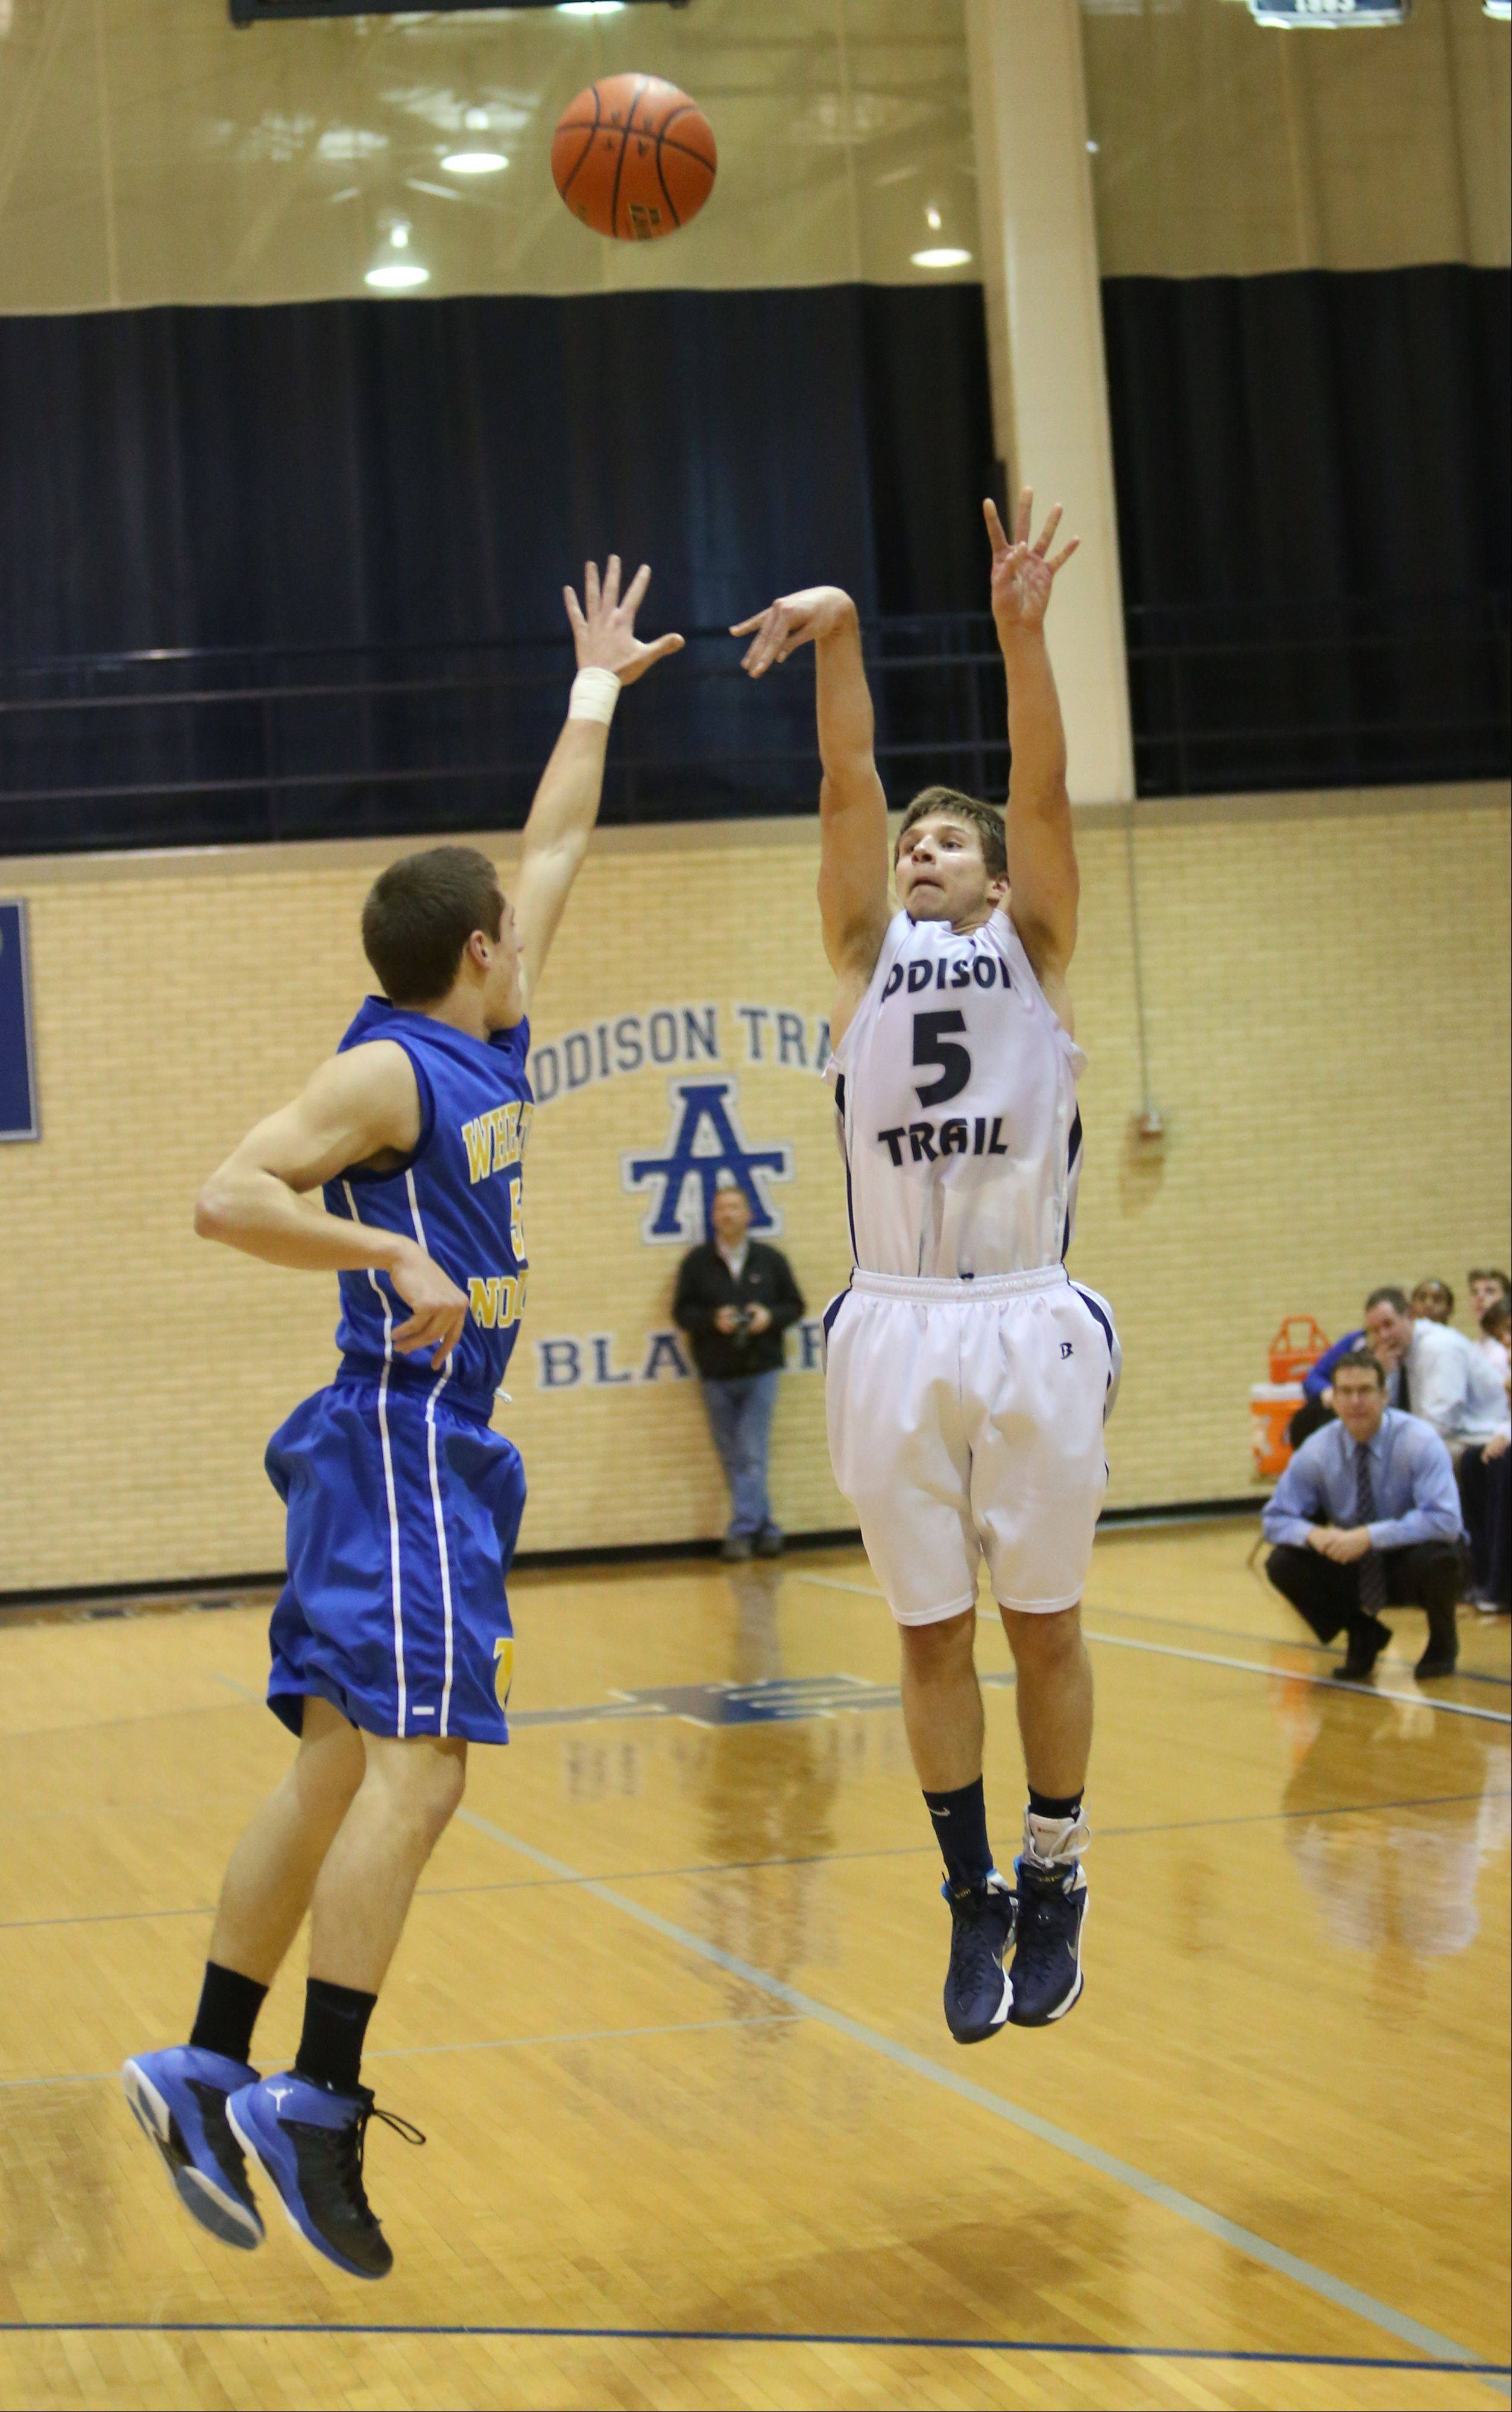 Photos from the Wheaton North at Addison Trail boys basketball game on Monday, Dec. 9.